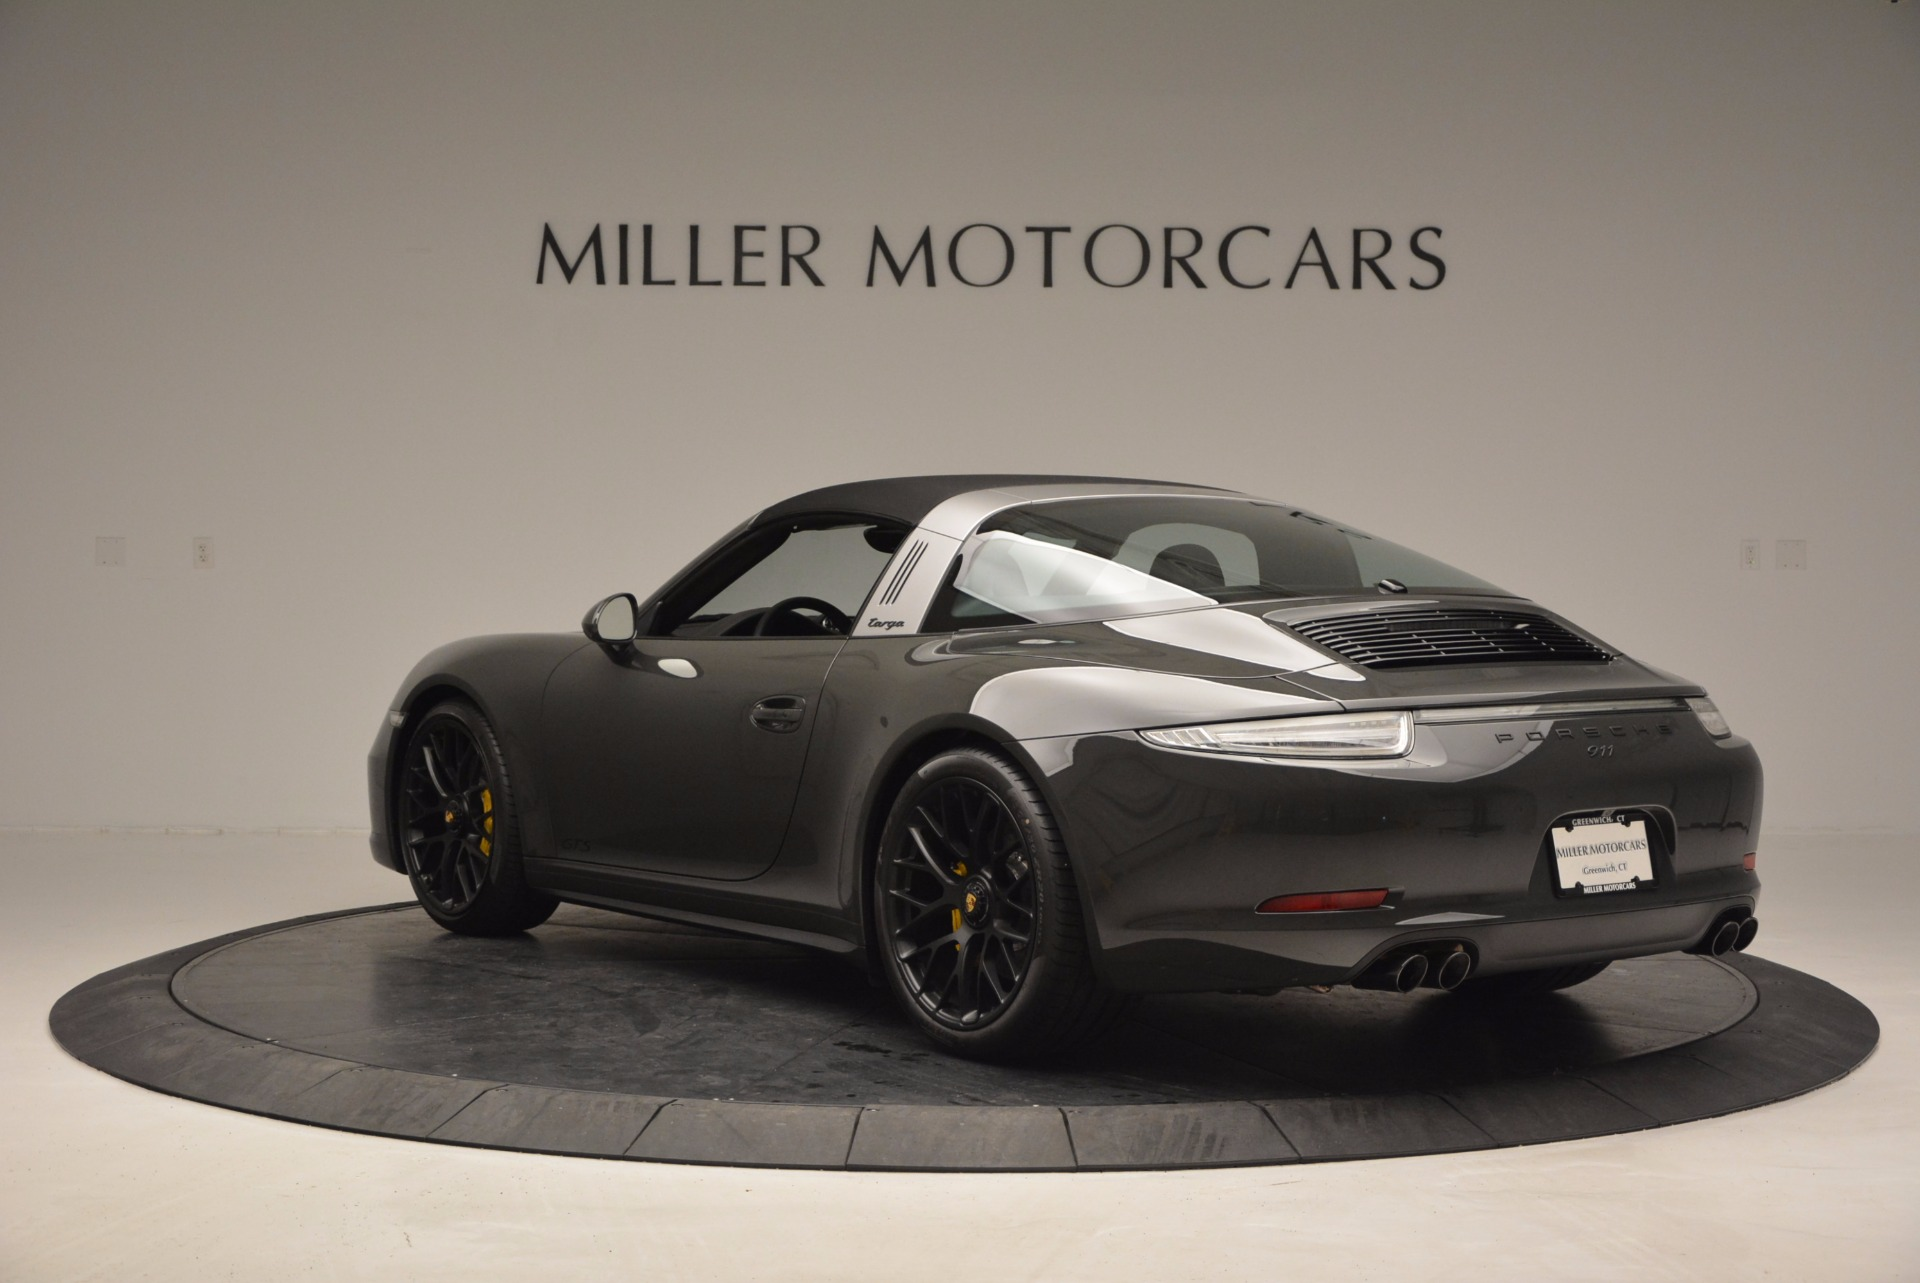 Used 2016 Porsche 911 Targa 4 GTS For Sale In Greenwich, CT 799_p16